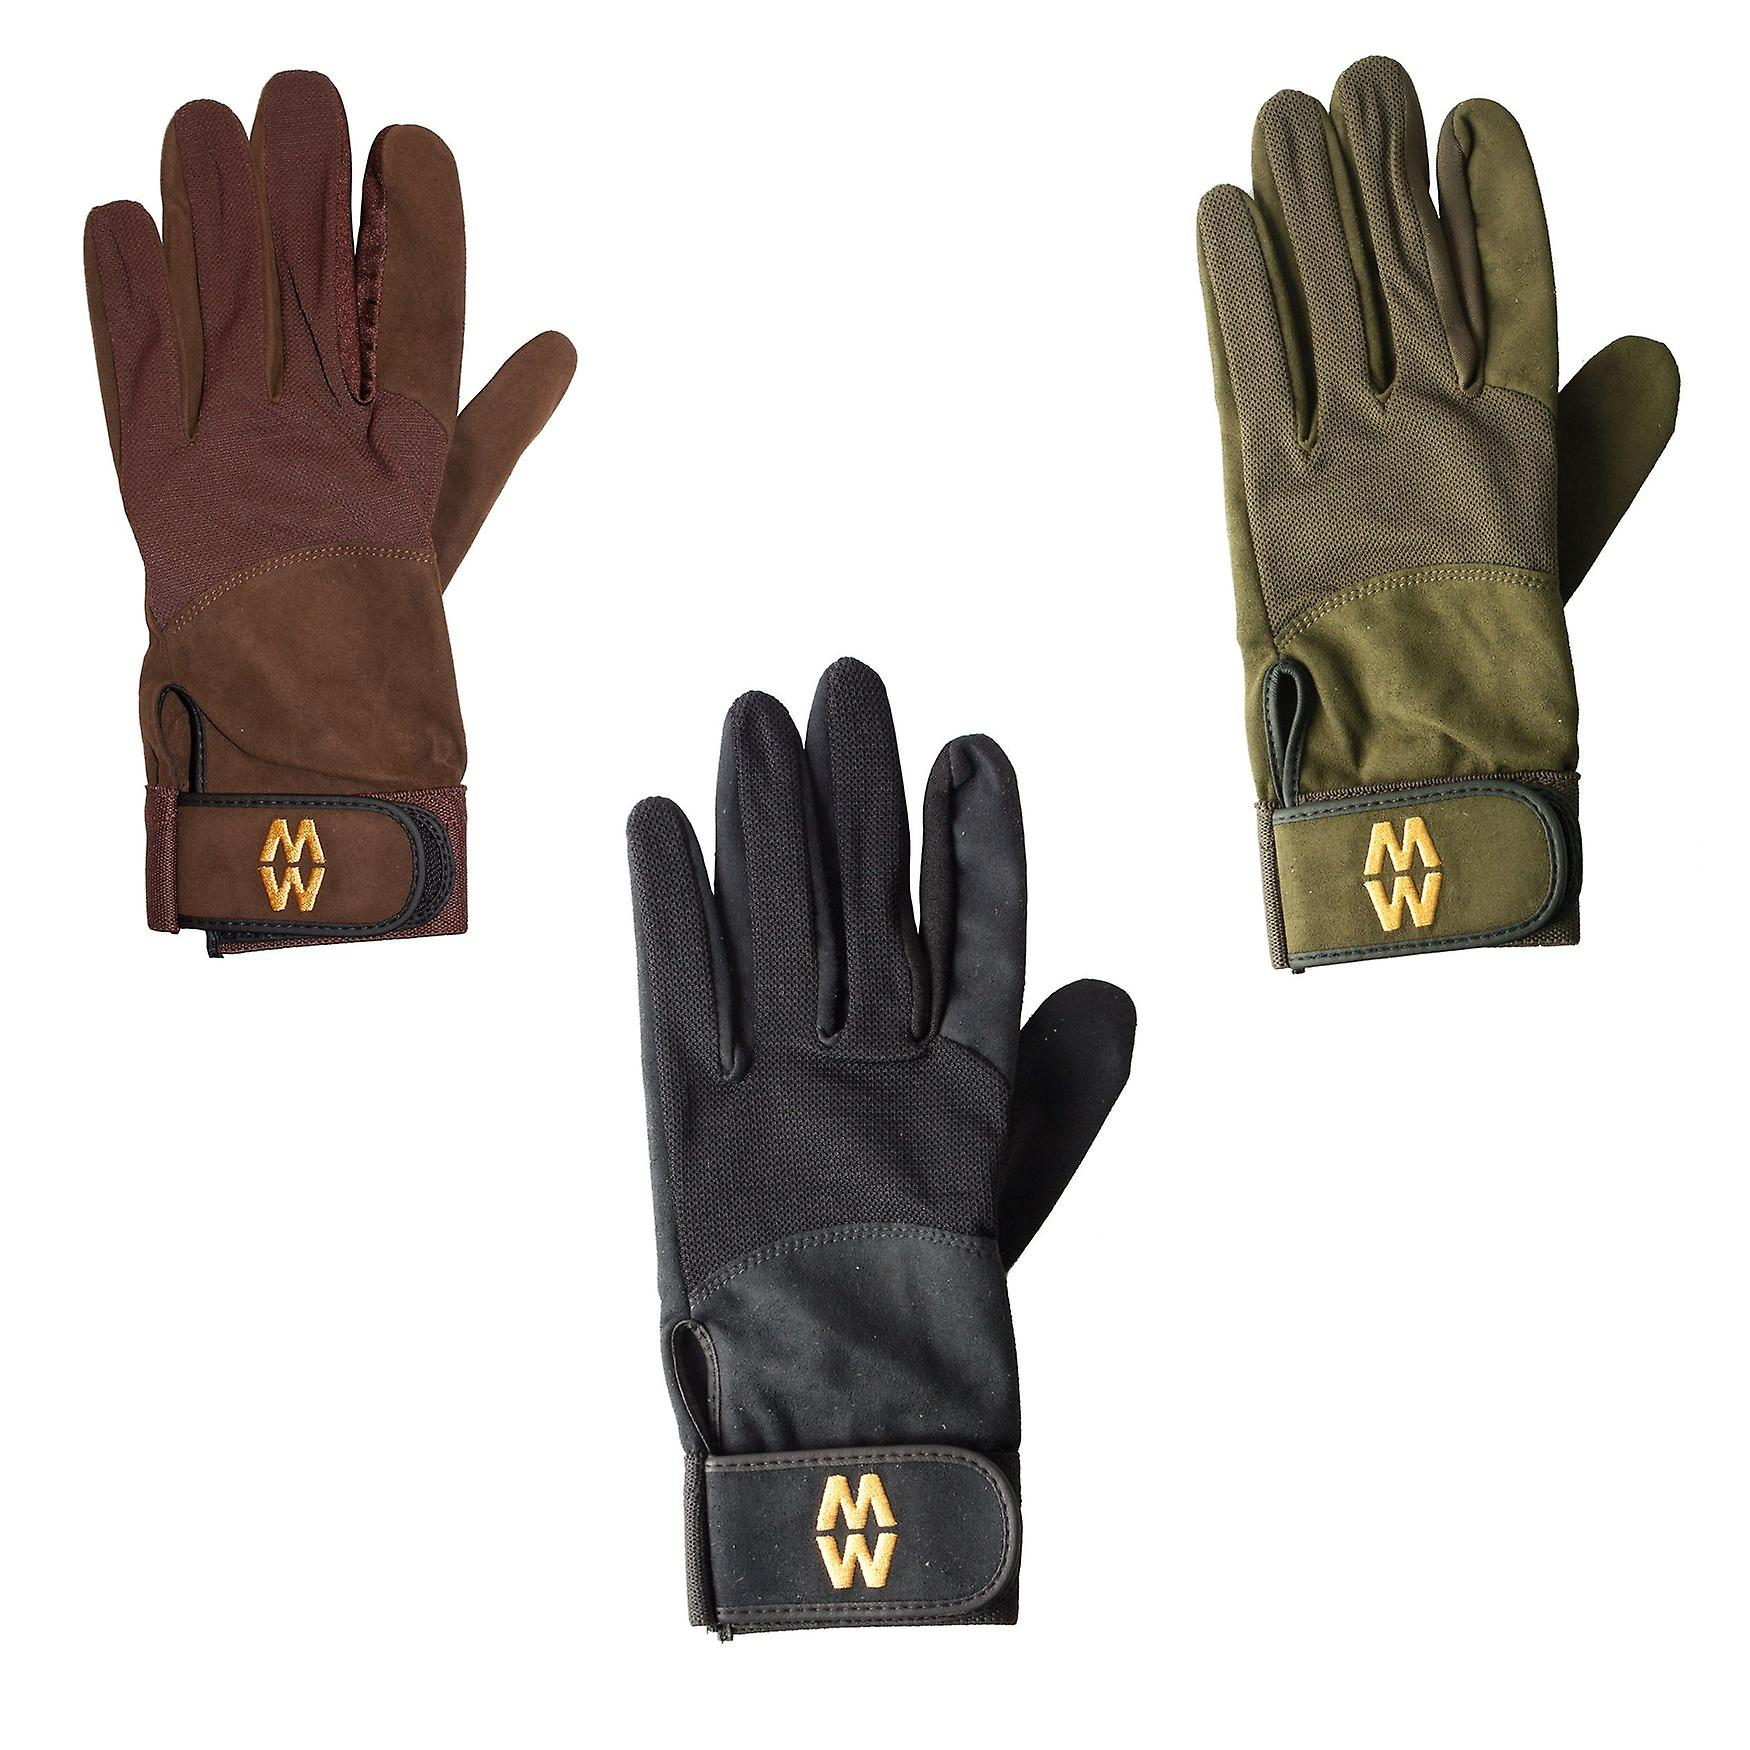 Macwet Micromesh Gloves Long cuff - grip in all conditions golf archery shooting